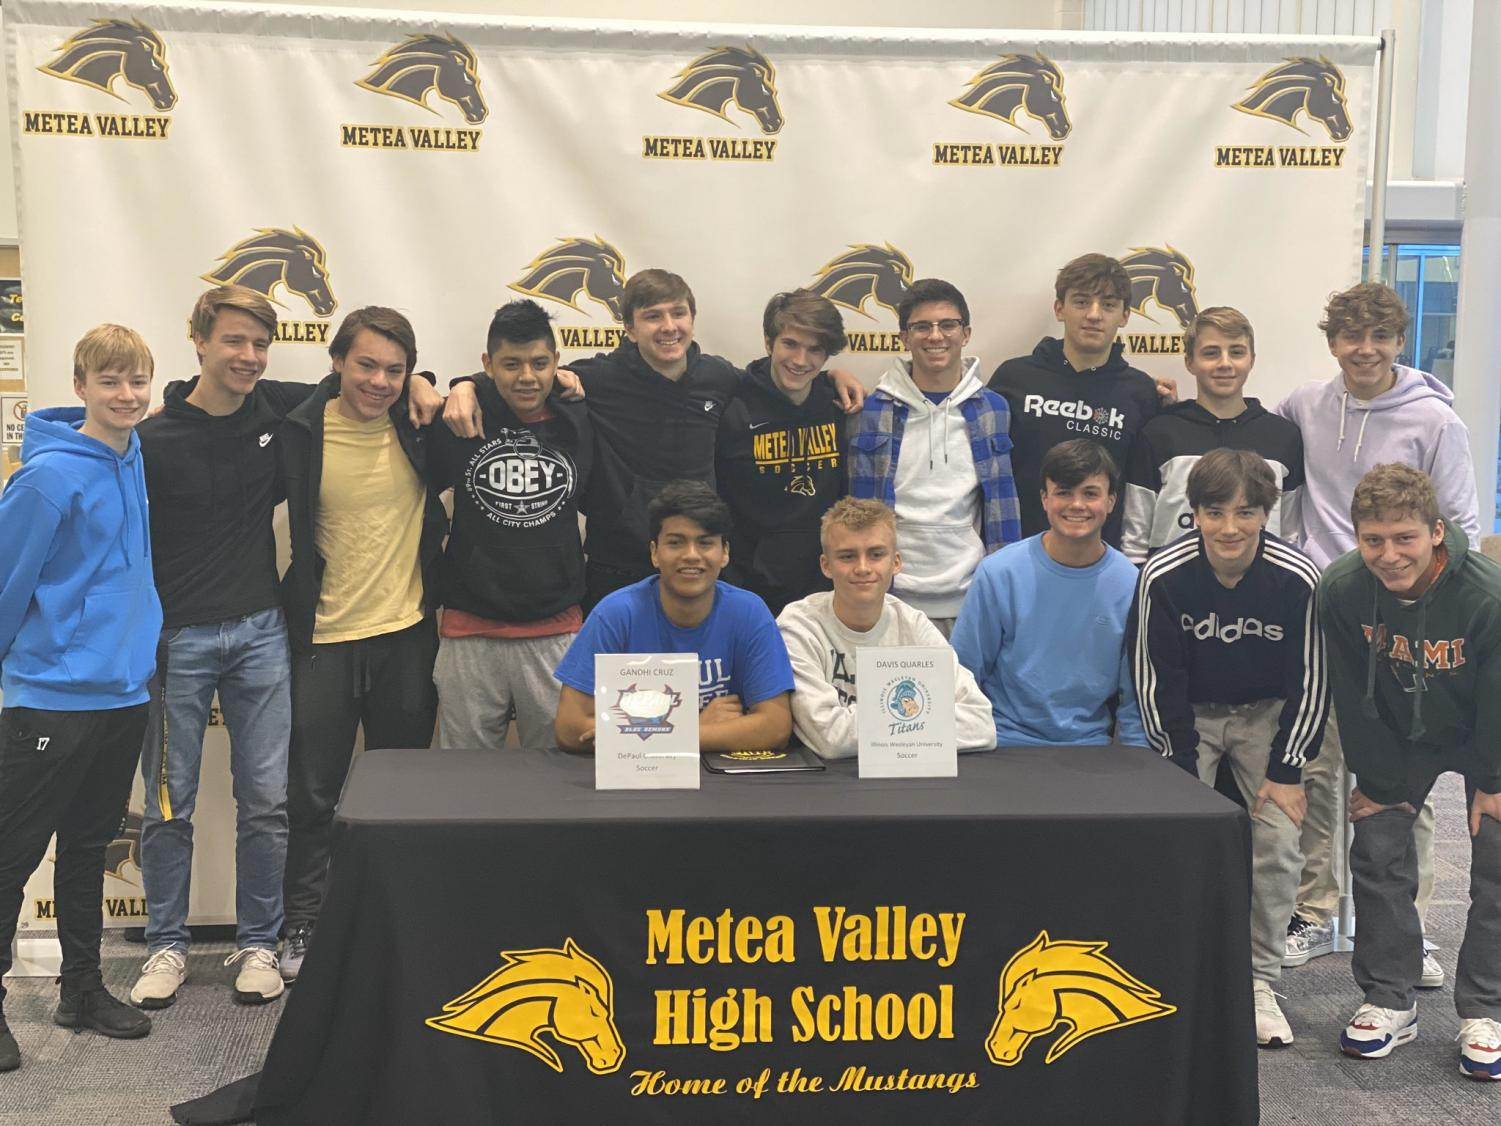 The Mustangs show support for Gandhi Cruz and Davis Quarles during last Wednesday's signing.